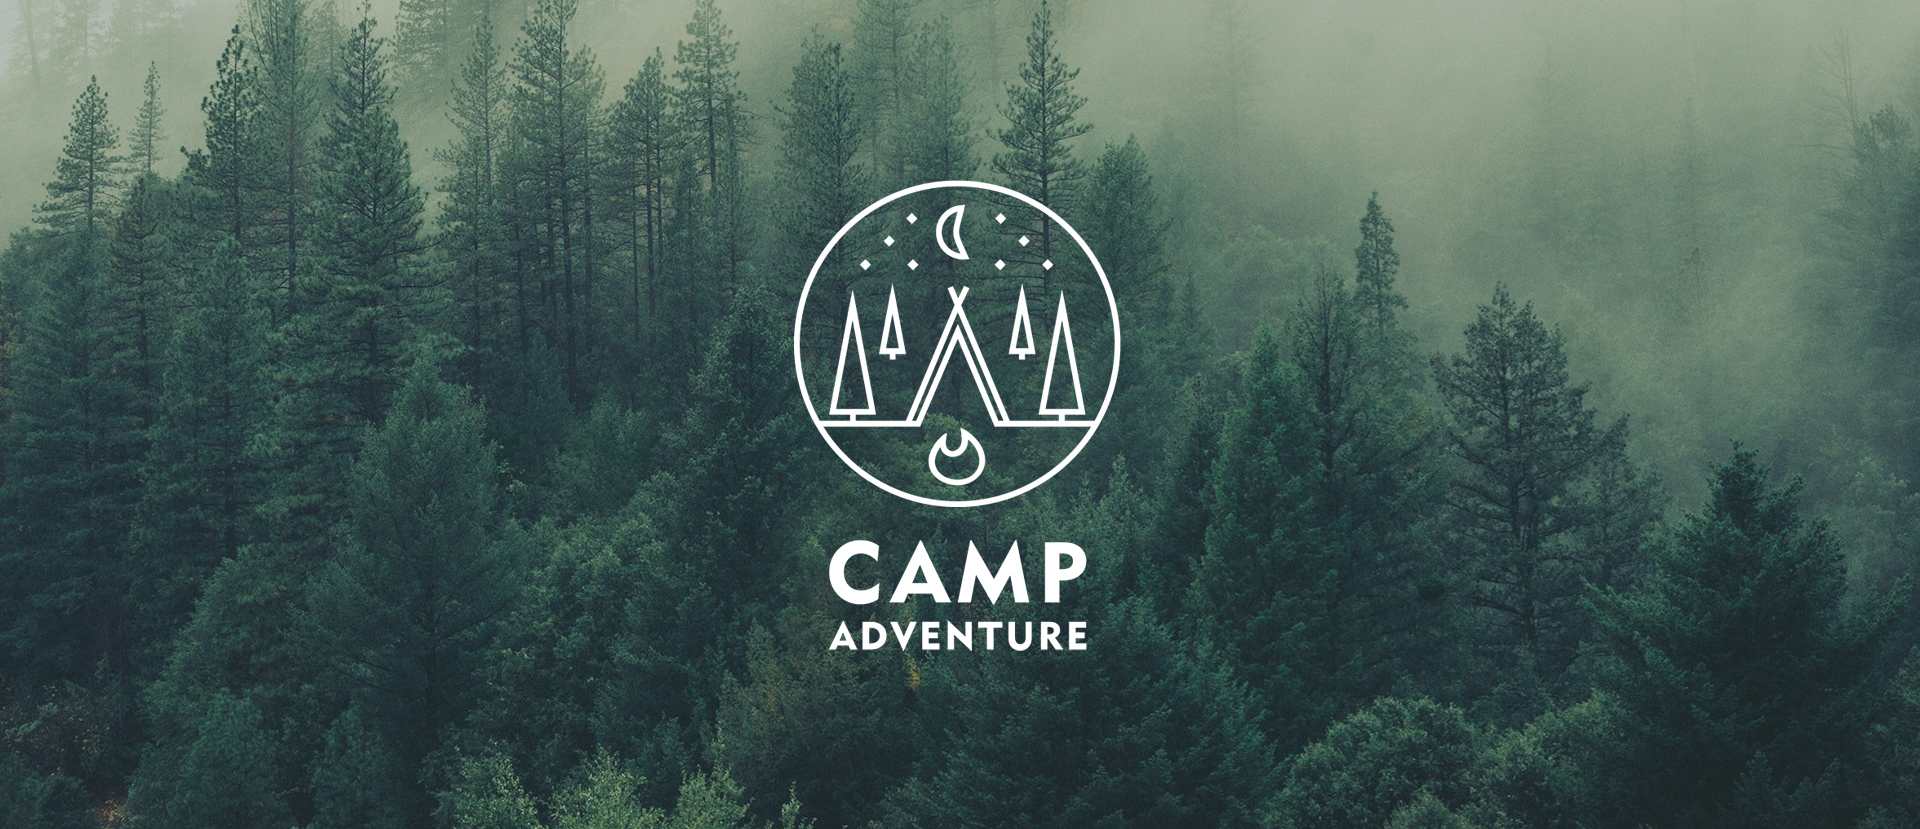 Camp adventure logo created by margos bites